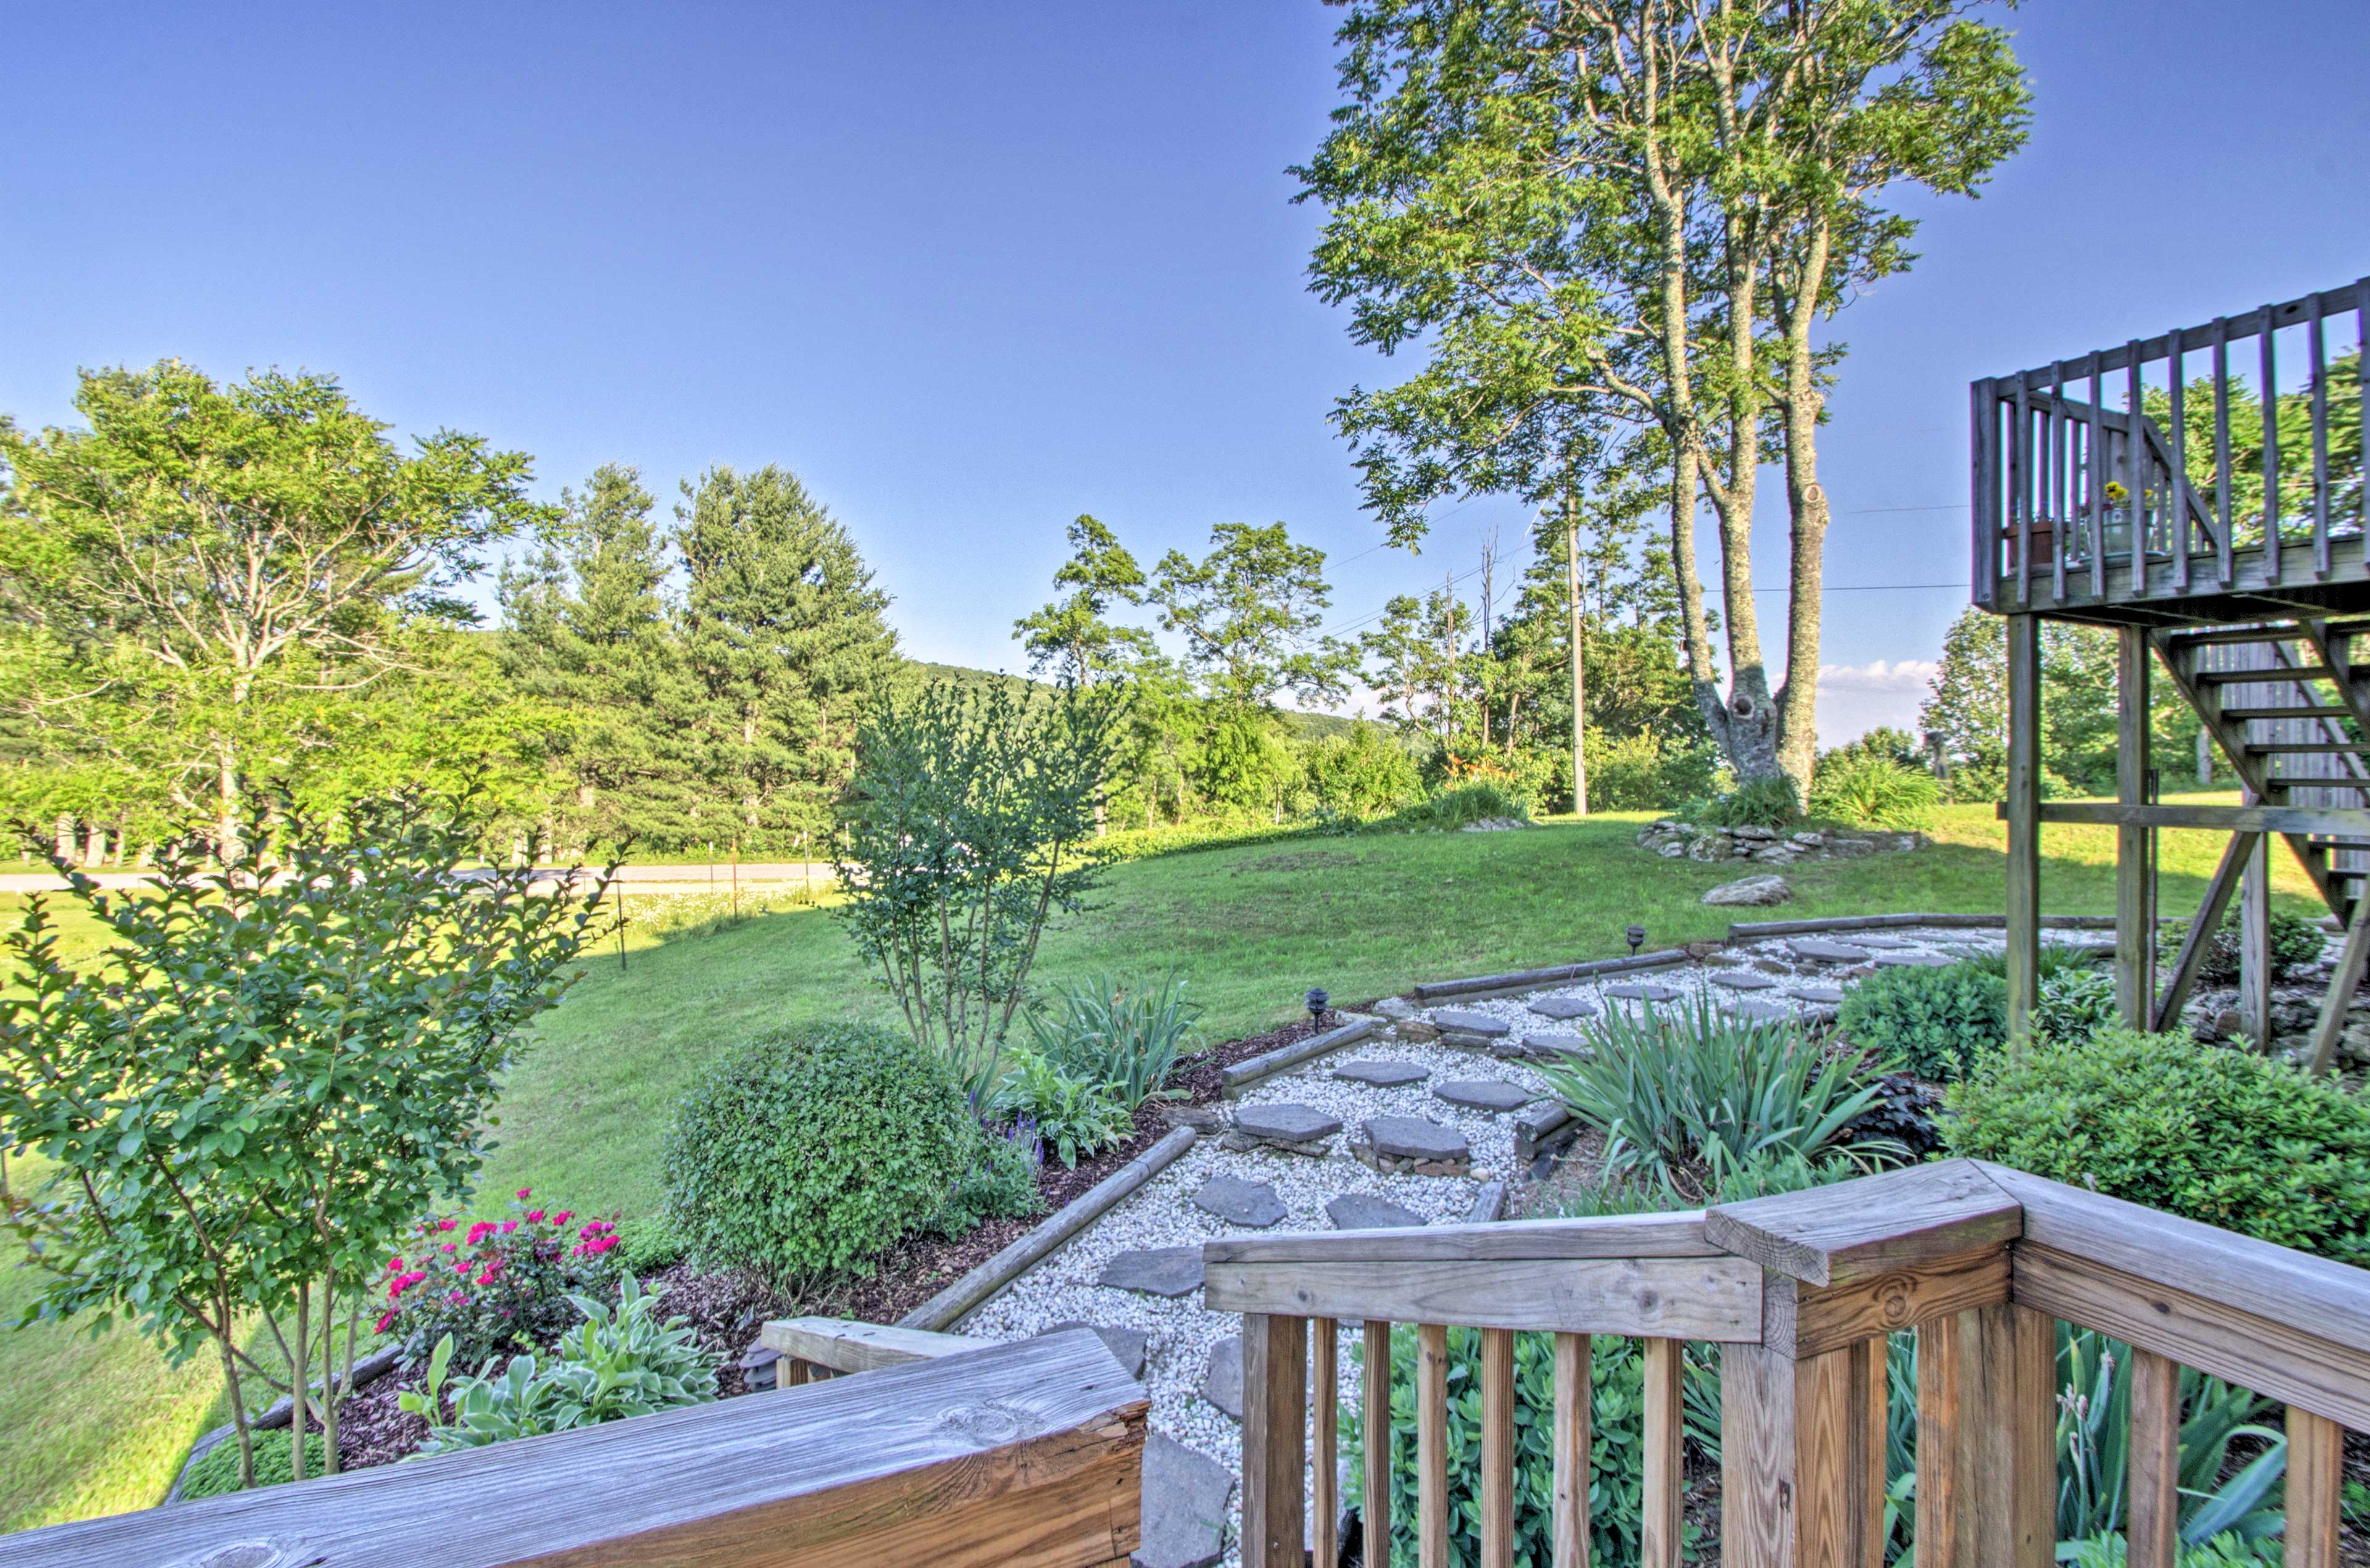 Verdant landscaping surrounds this property.